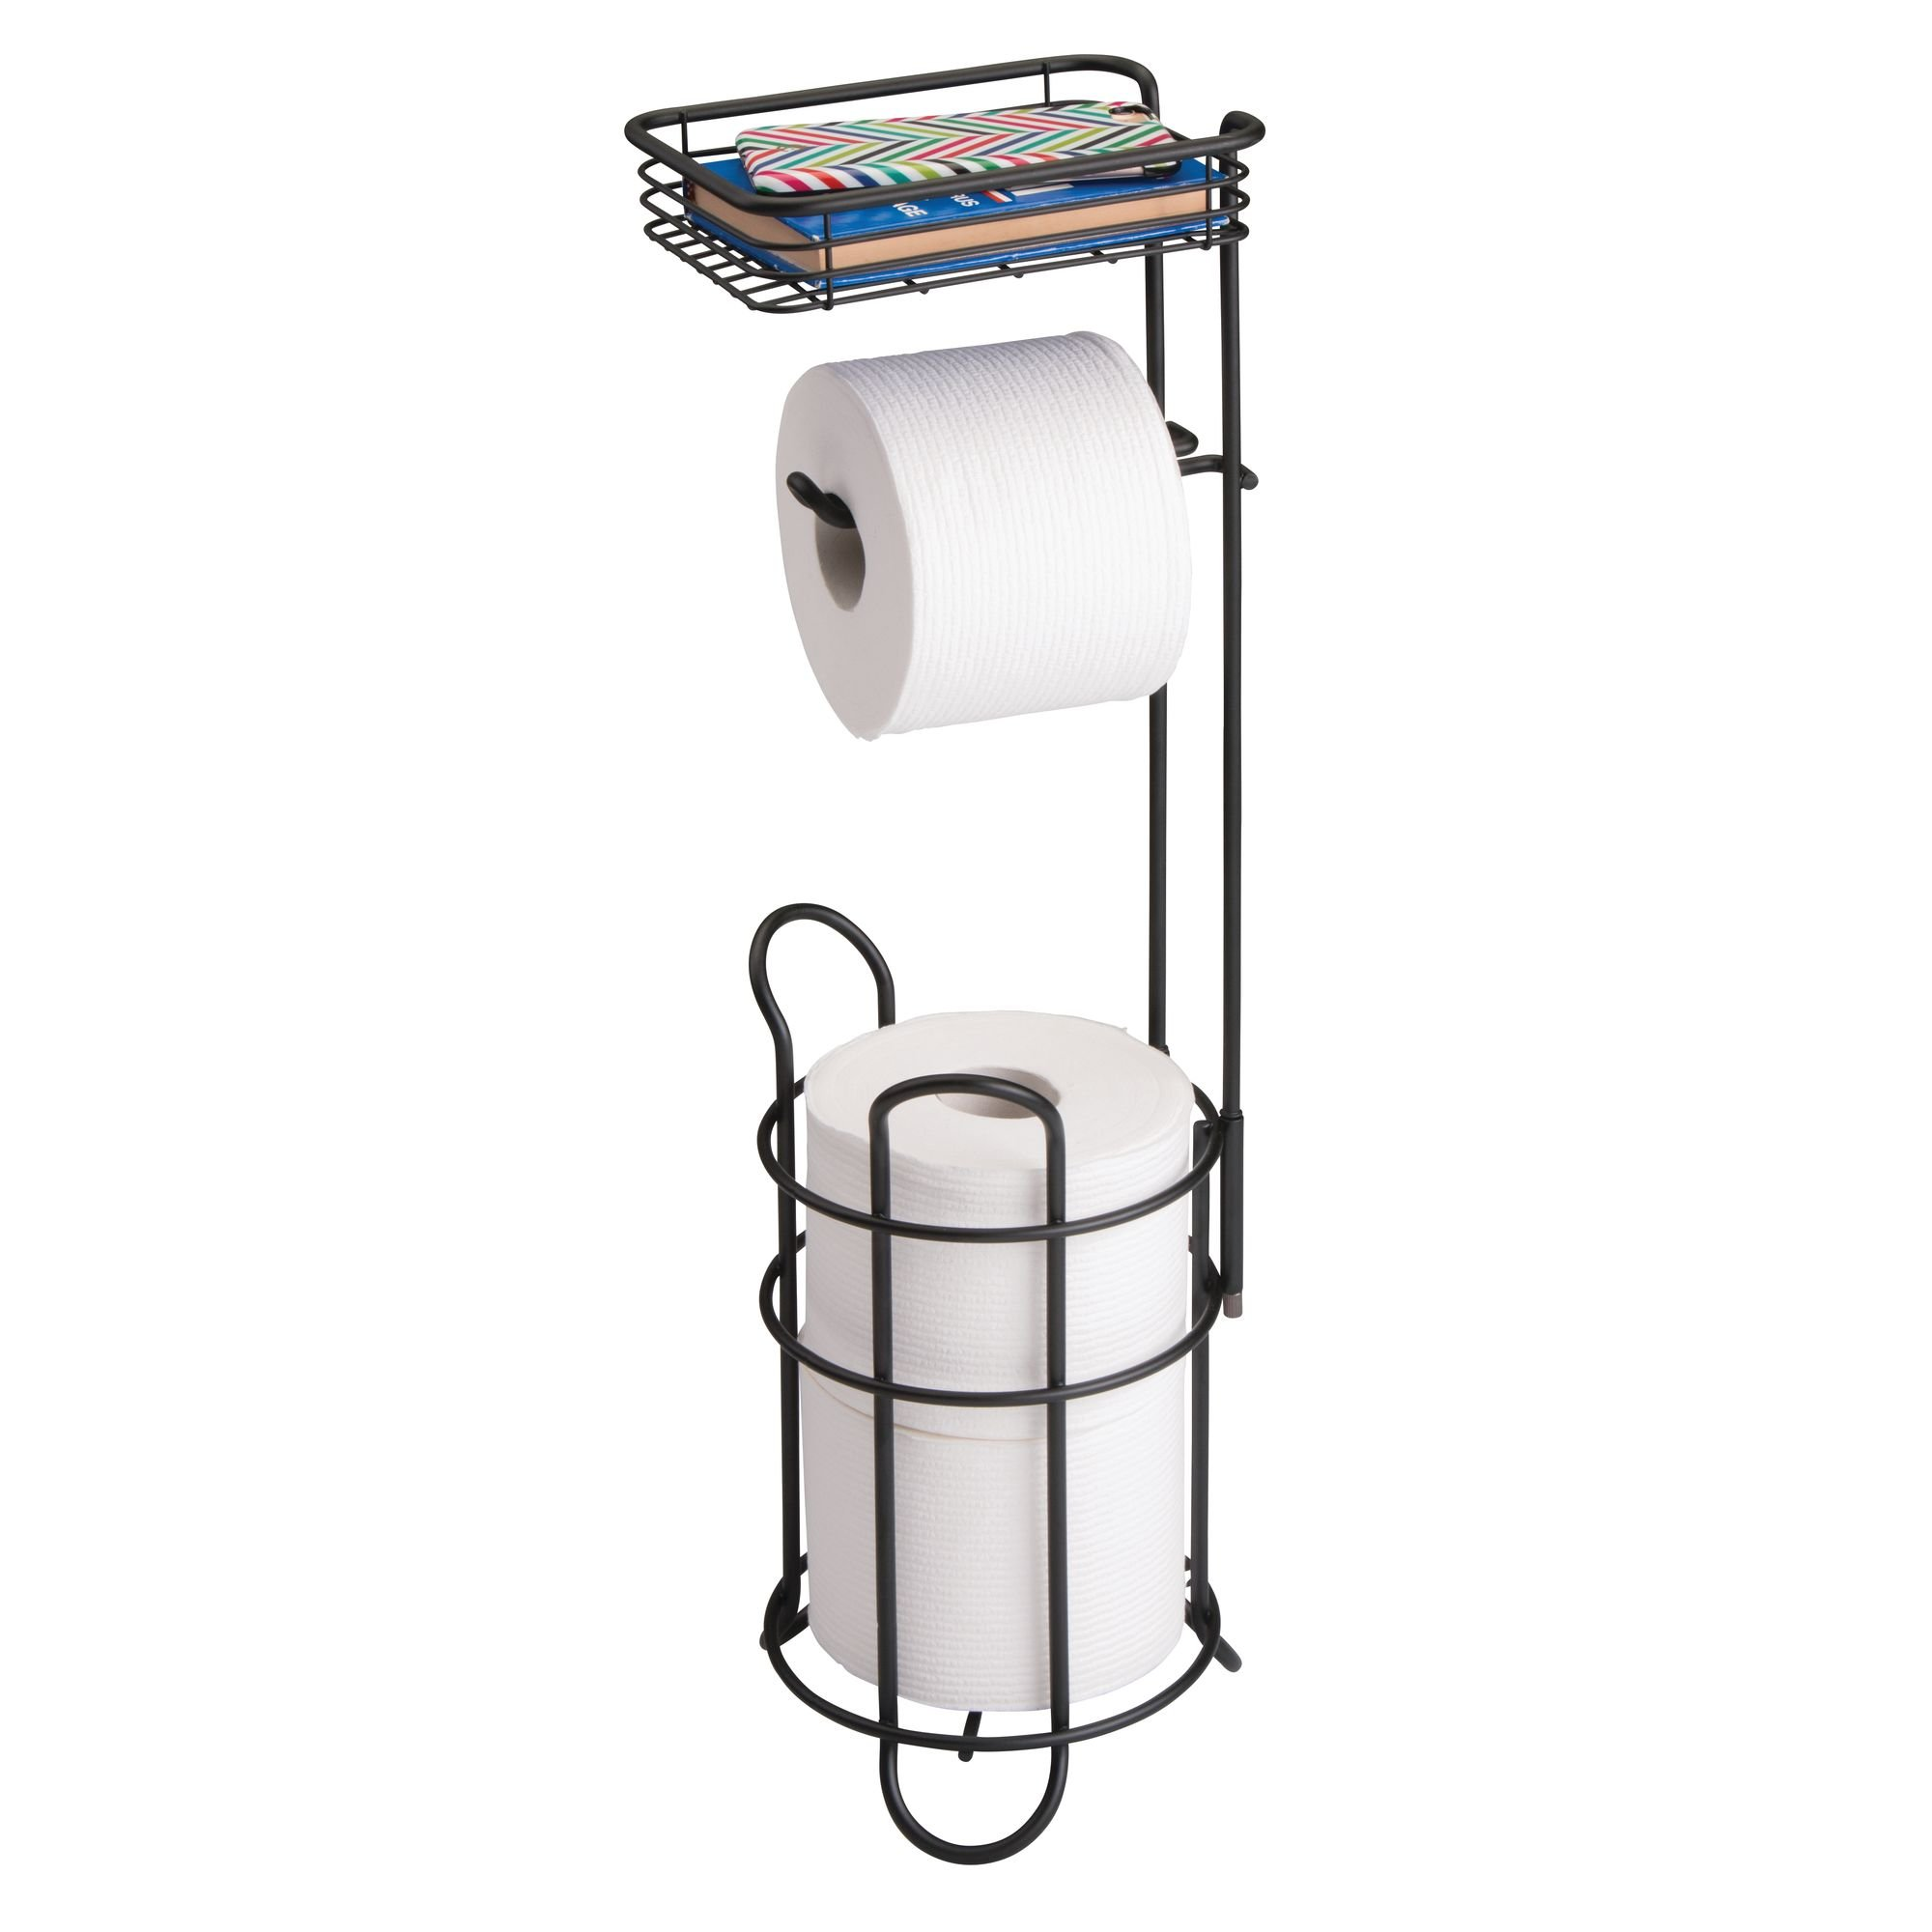 mDesign Freestanding Metal Wire Toilet Paper Roll Dispenser Holder and Extra Roll Reserve with Storage Shelf for Cell, Mobile Phone - Bathroom Storage Organization - Holds 3 Rolls - Matte Black